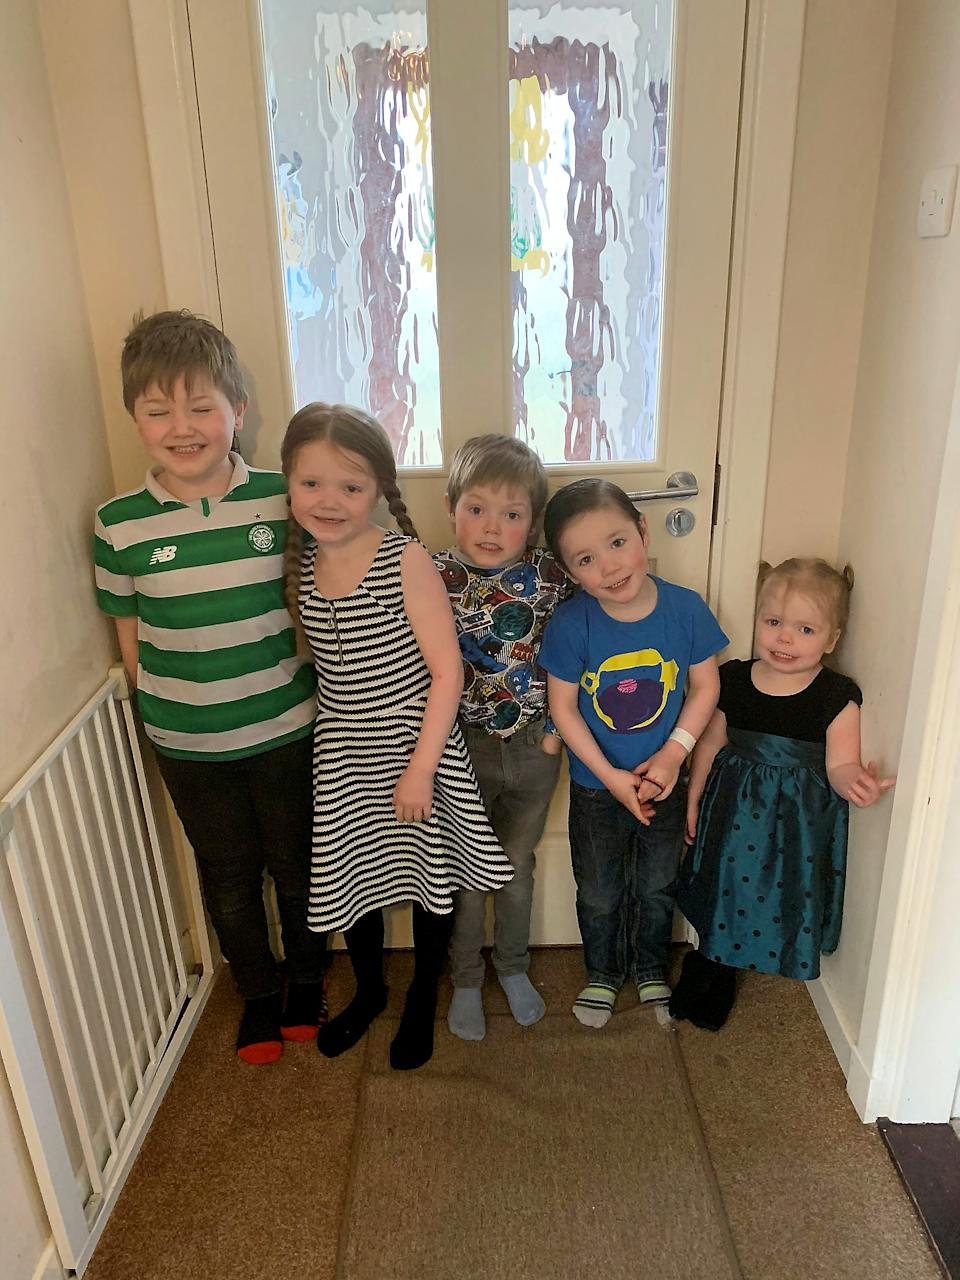 Kayleigh Compston's children Tyler, nine, Tegan, eight, Tommy-Lee, seven, Teejay, five, and Tianna, four.  (Kayleigh Compston/SWNS)